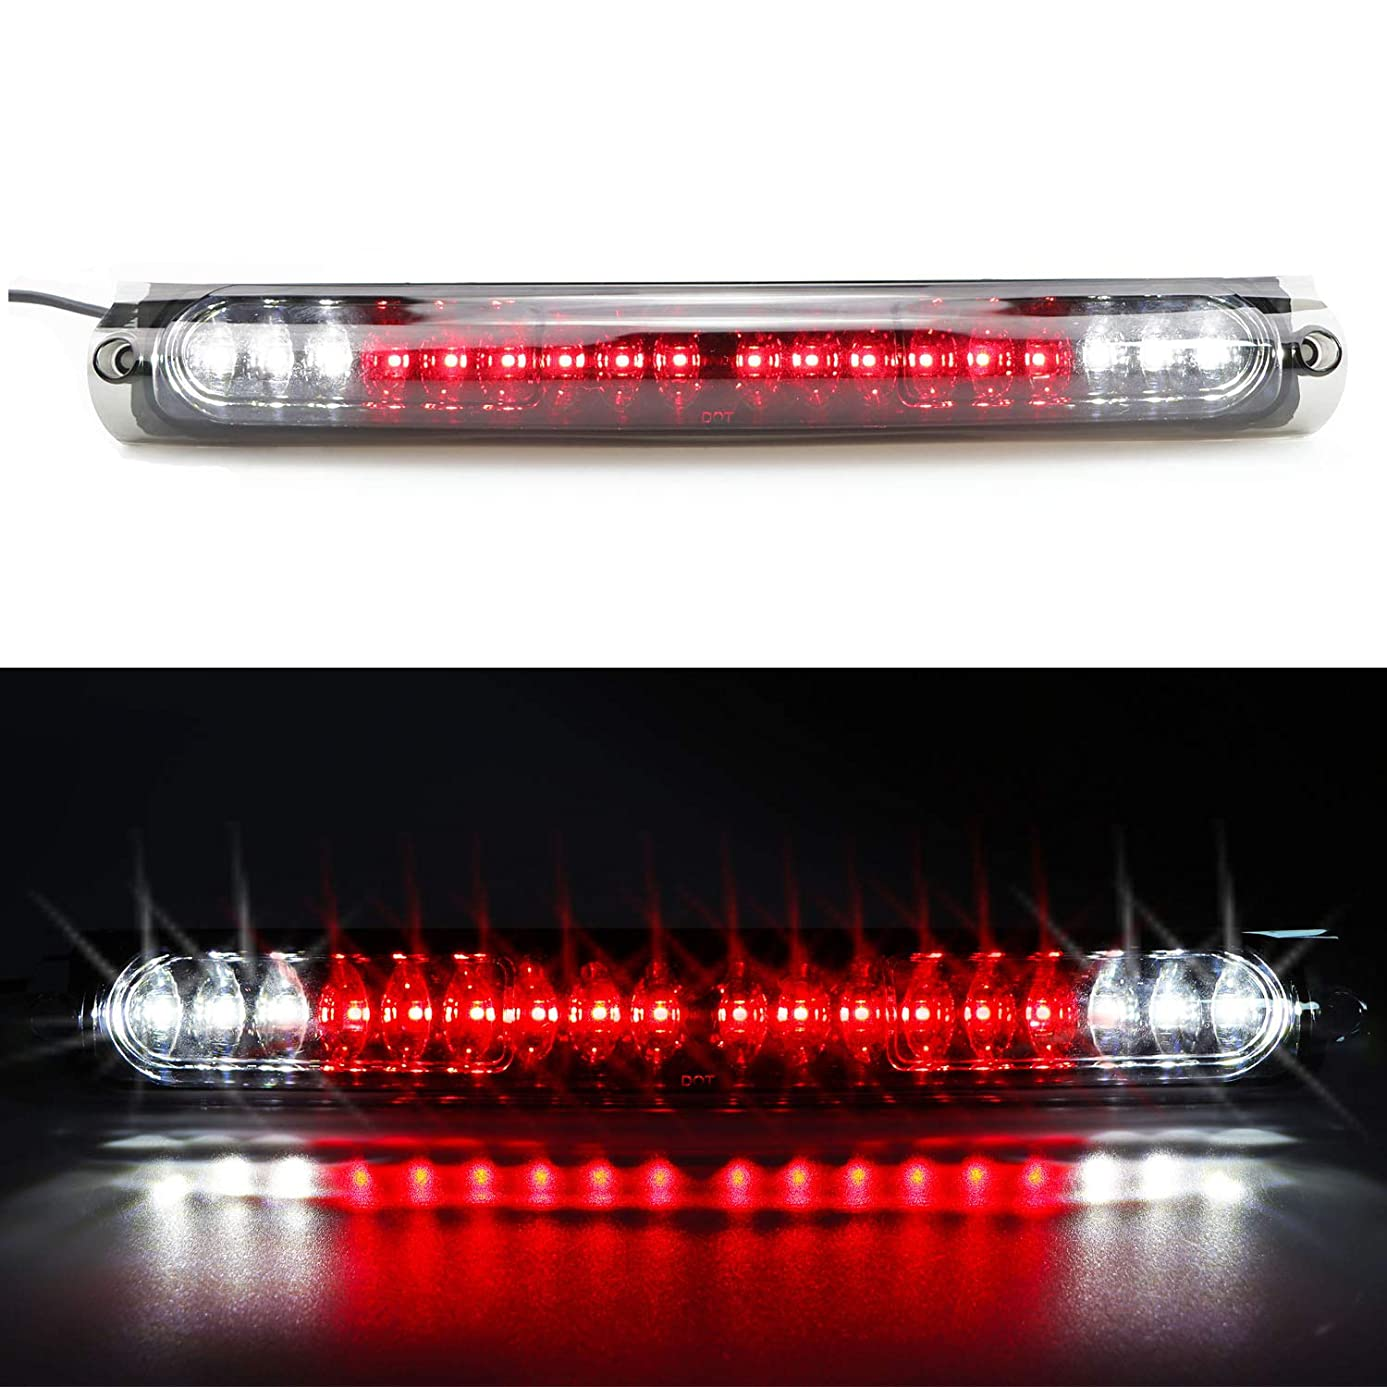 High Mount Stop Tail Light, Rear Roof Center LED Third 3rd Brake Cargo Light Assembly Replacement for 1997-2003 Ford F-150, 2004 Ford F-150 Heritage (Black Housing Clear Lens)